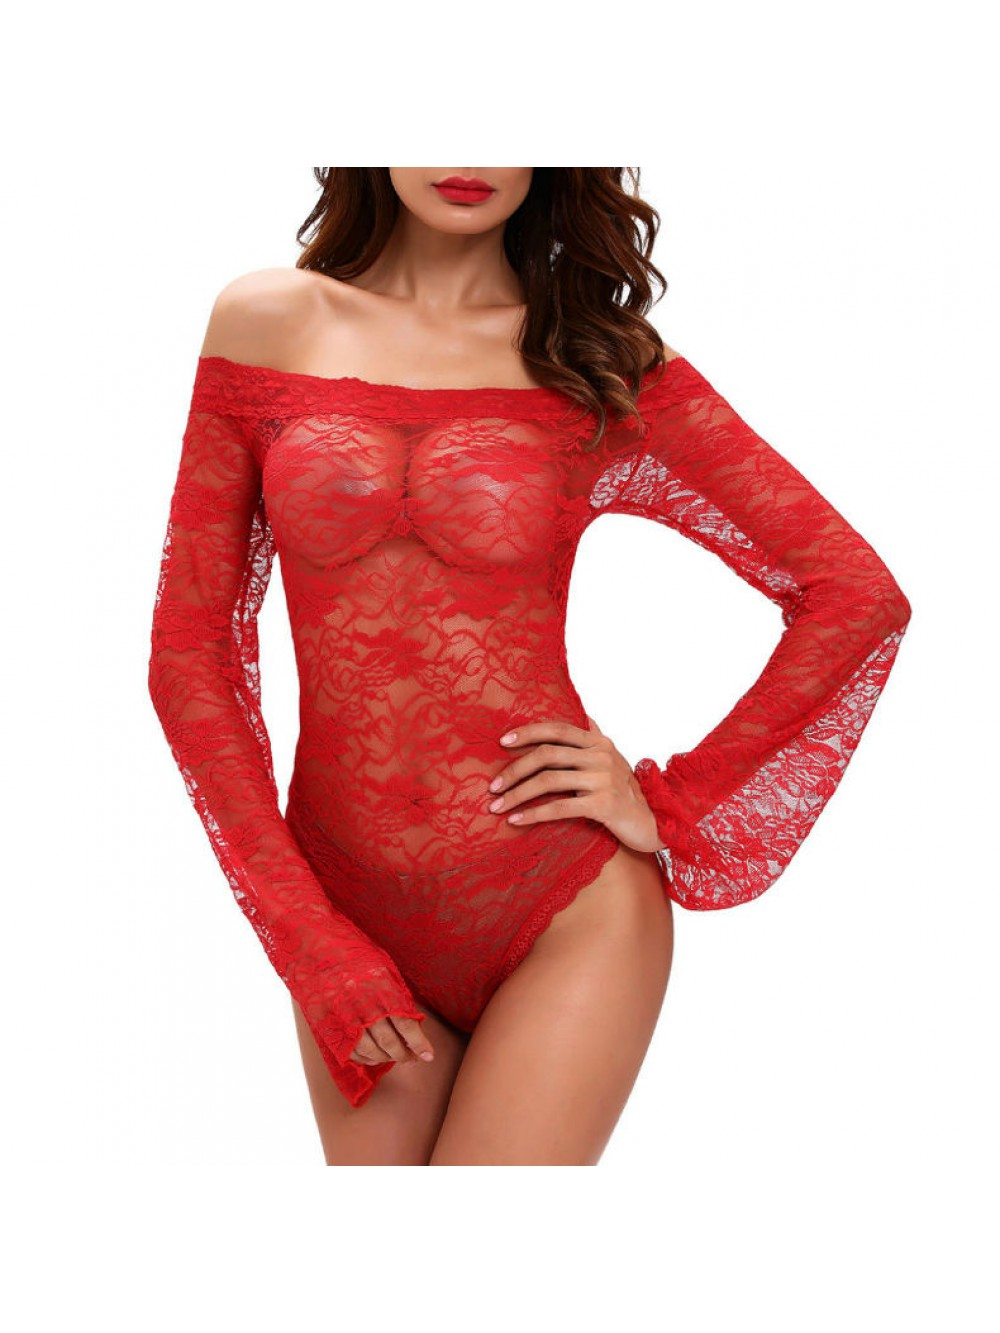 QUEEN LINGERIE TEDDY RED M-L 714569757359